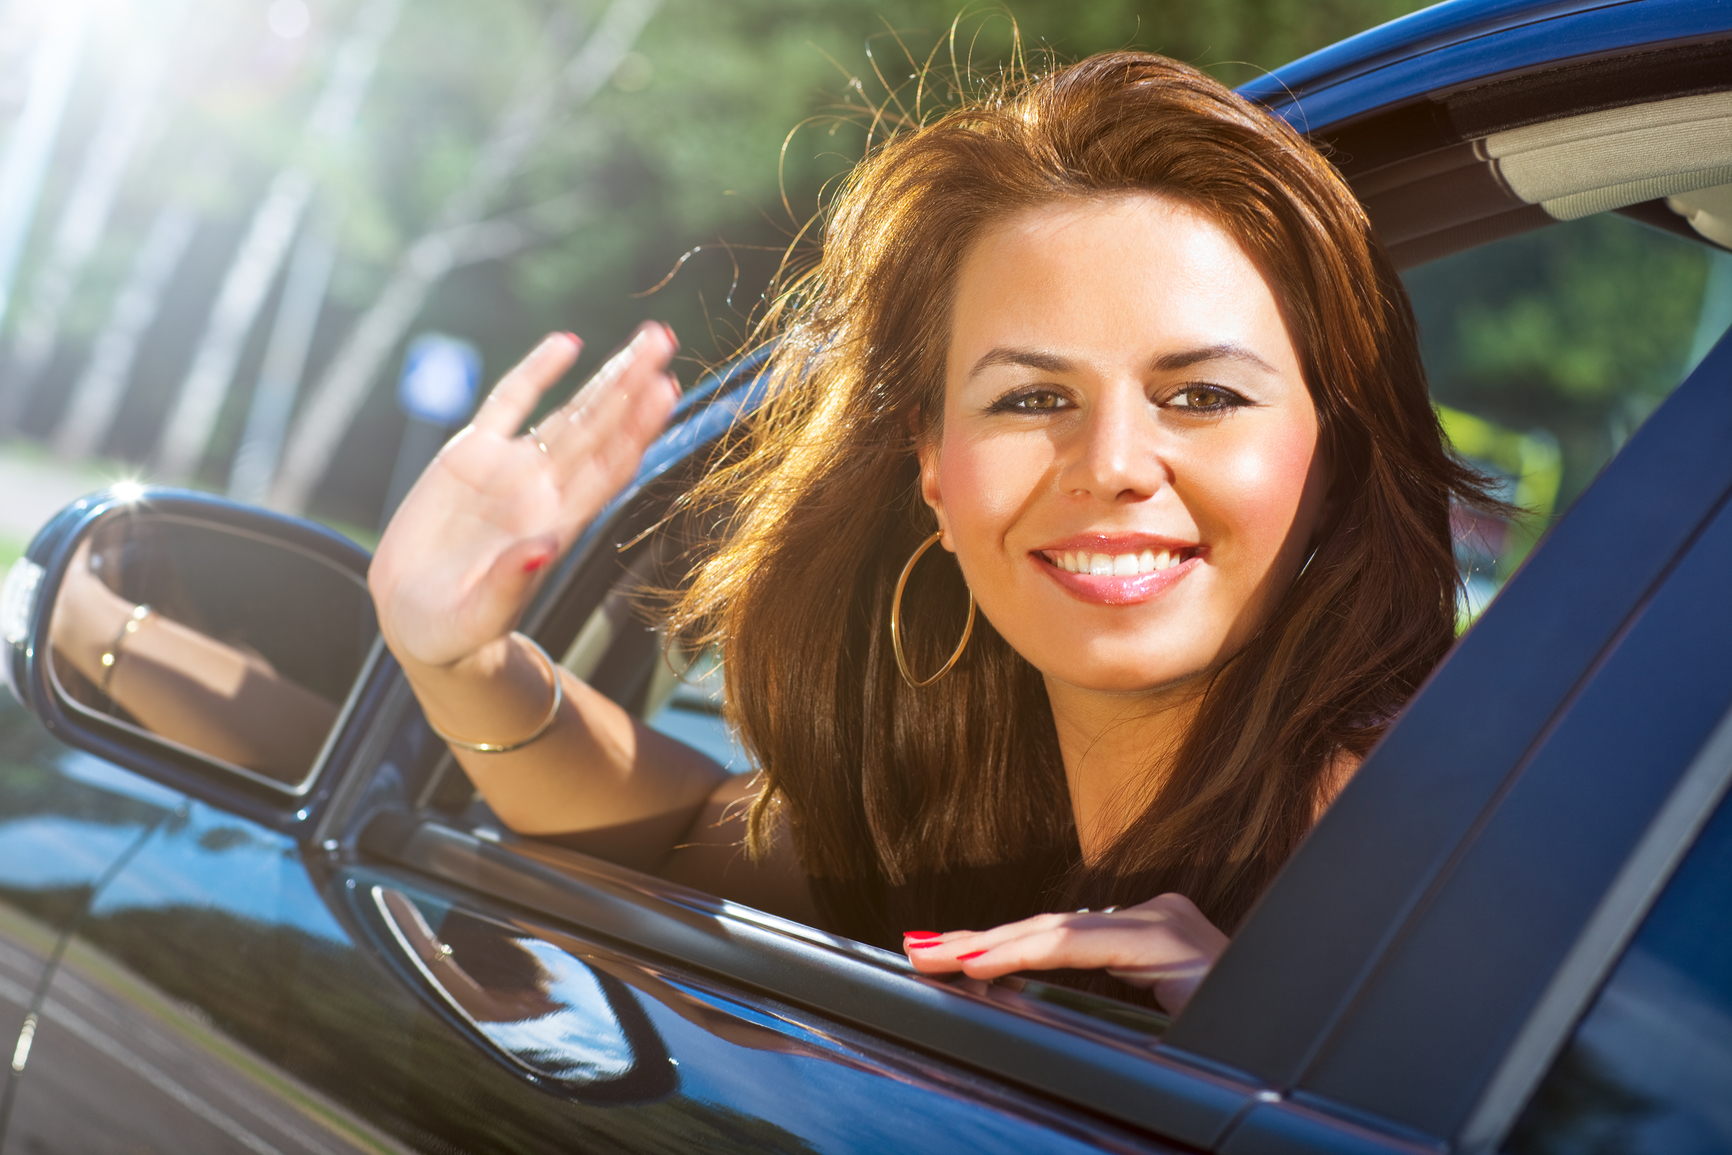 Young woman looking out of car and waving hand.